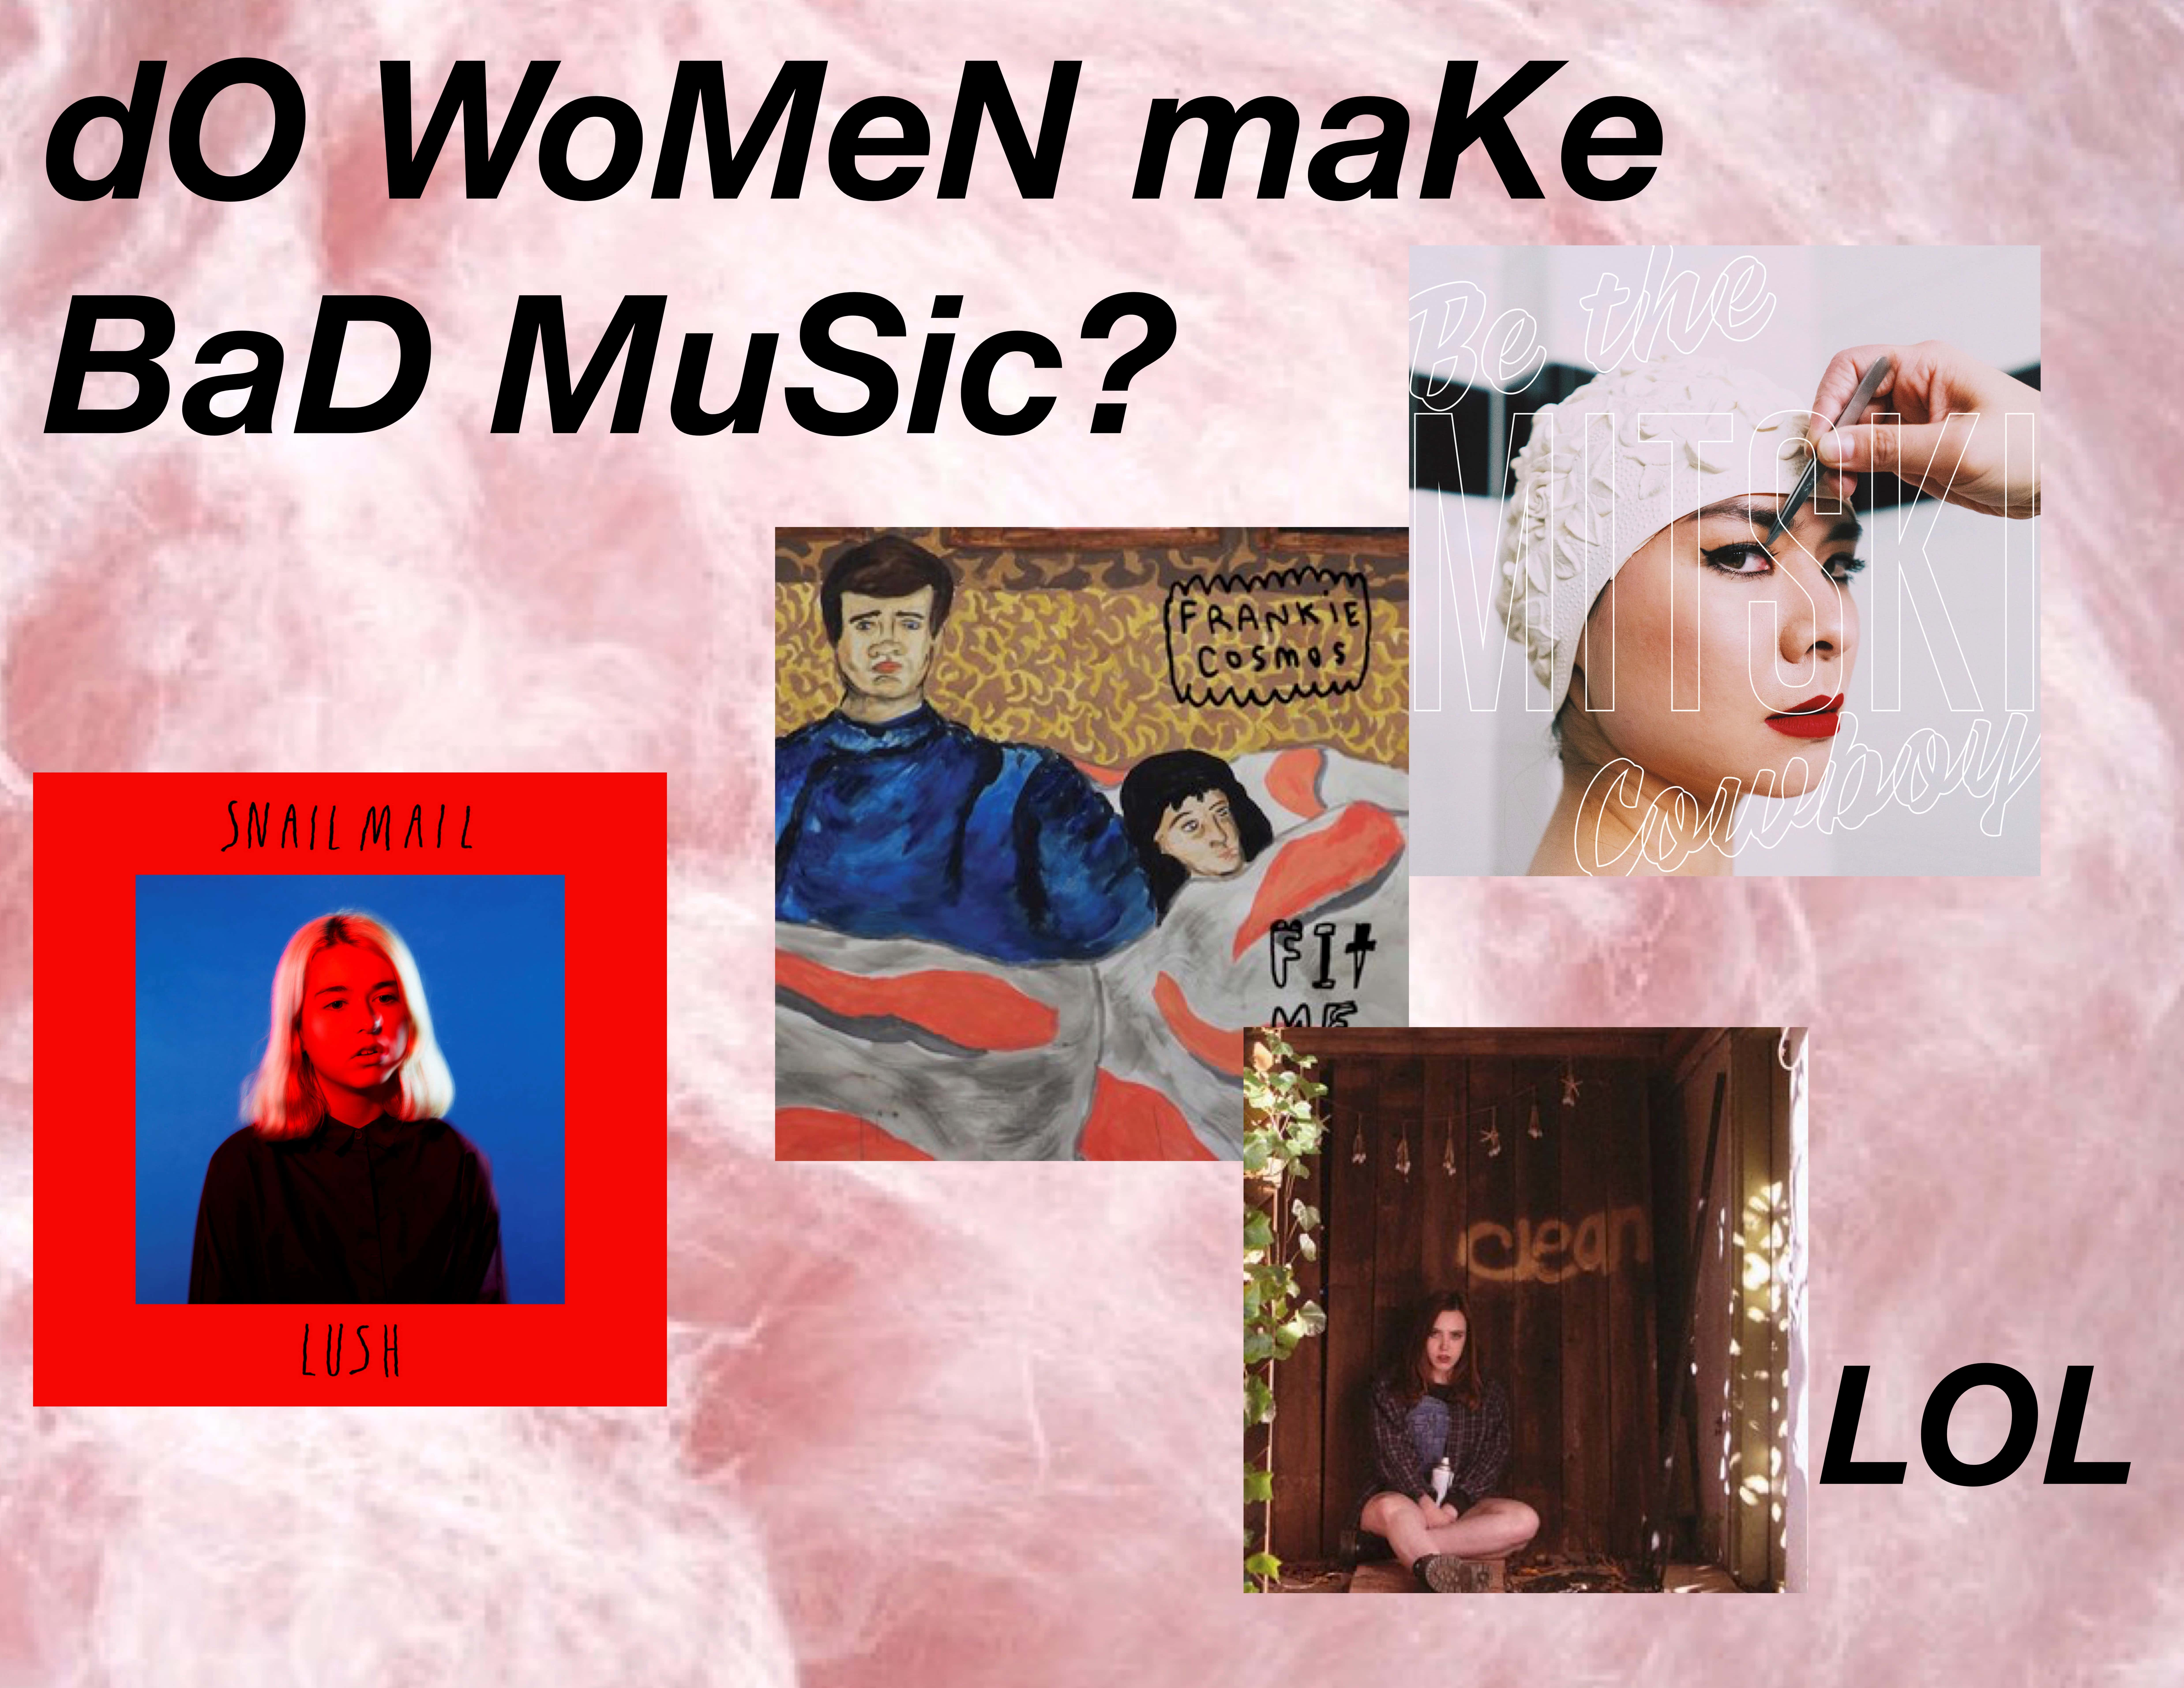 """Pink tie dye background with the text """"dO WoMeN maKe BaD MuSic?"""" and album covers of female artists like Lush, Frankie Cosmos, Mitski, and others"""